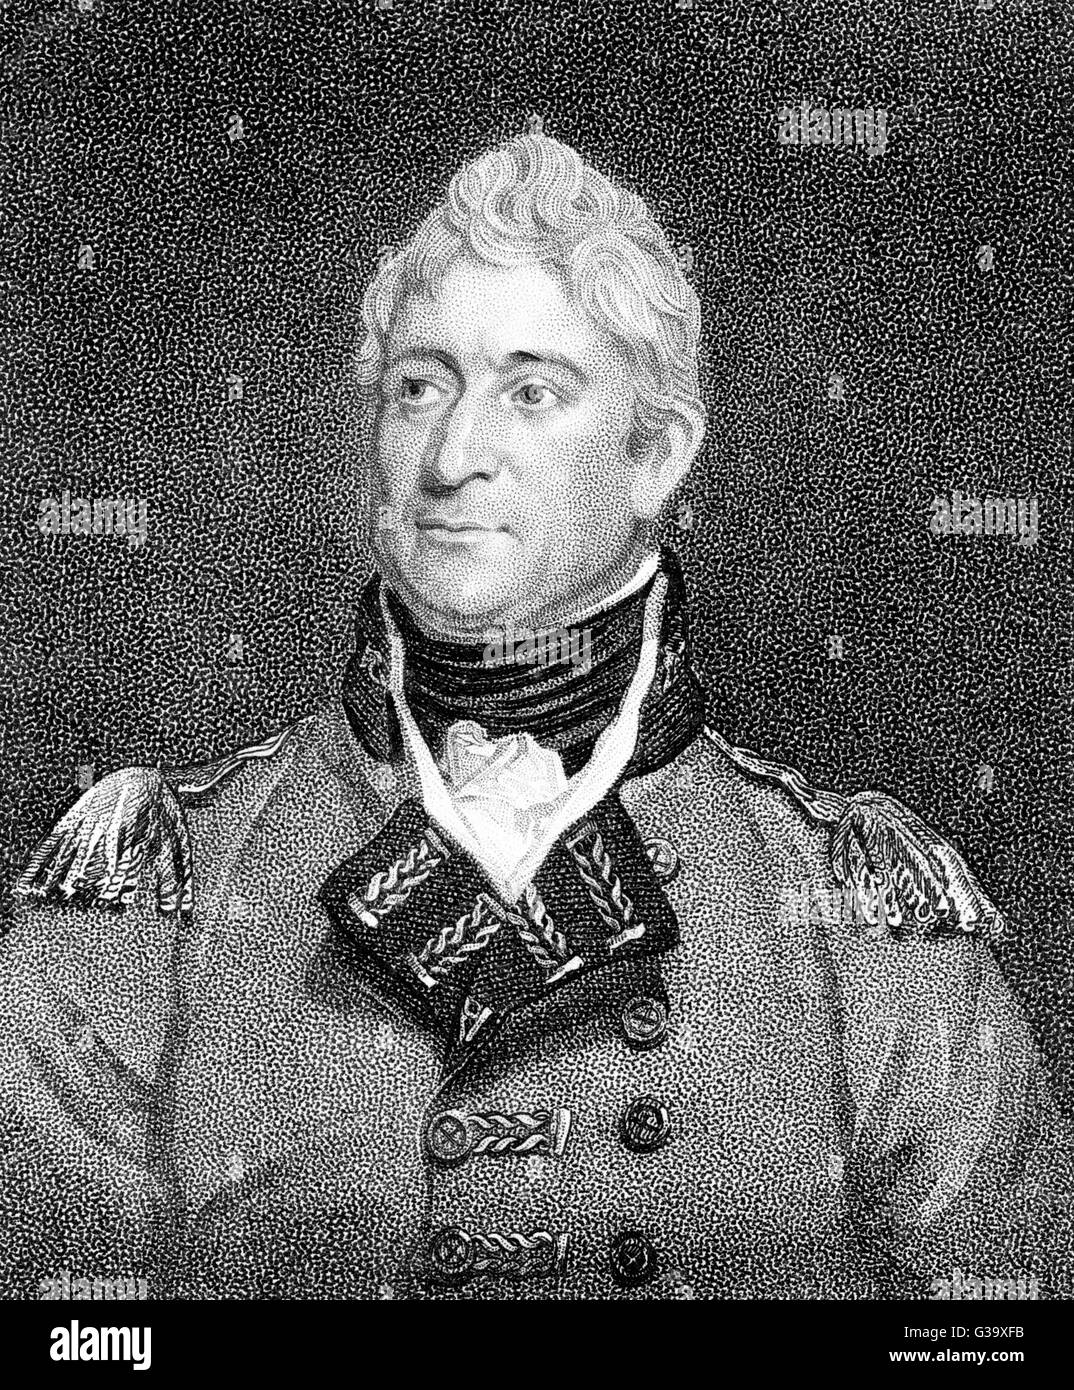 SIR THOMAS PICTON  British army officer        Date: 1758 - 1815 - Stock Image